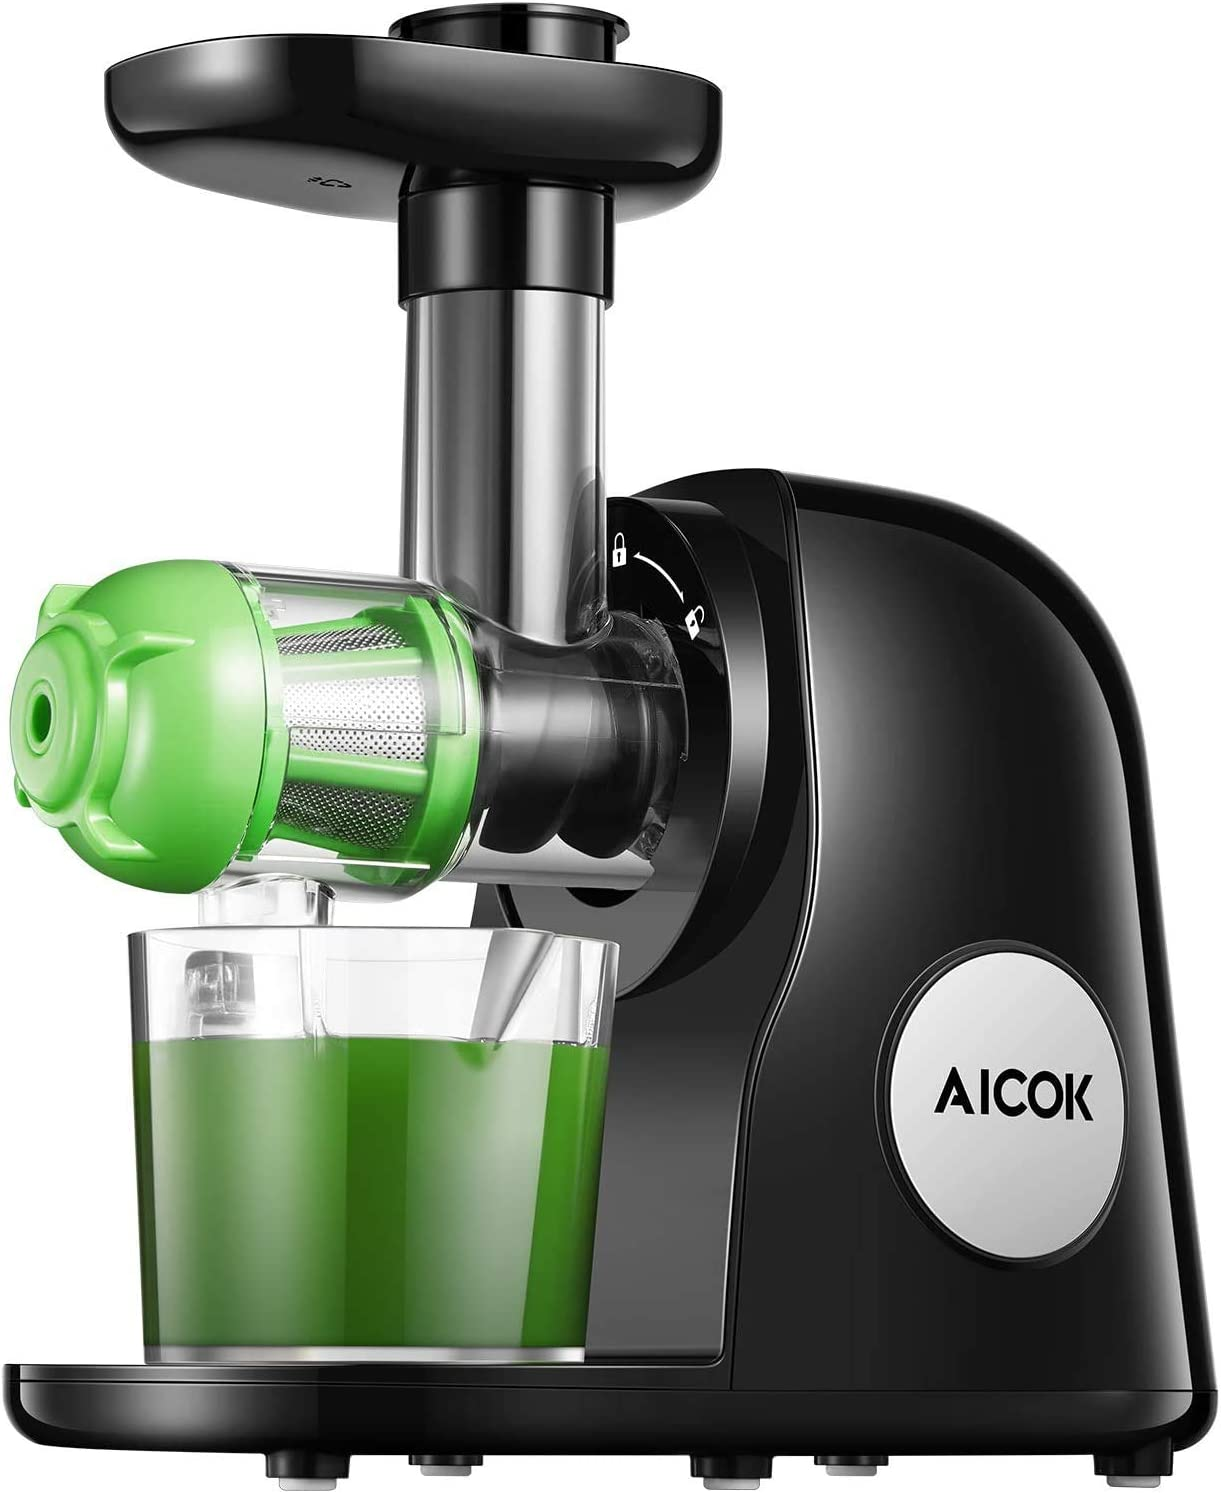 Aicok Slow Masticating Juicer for juicing kale